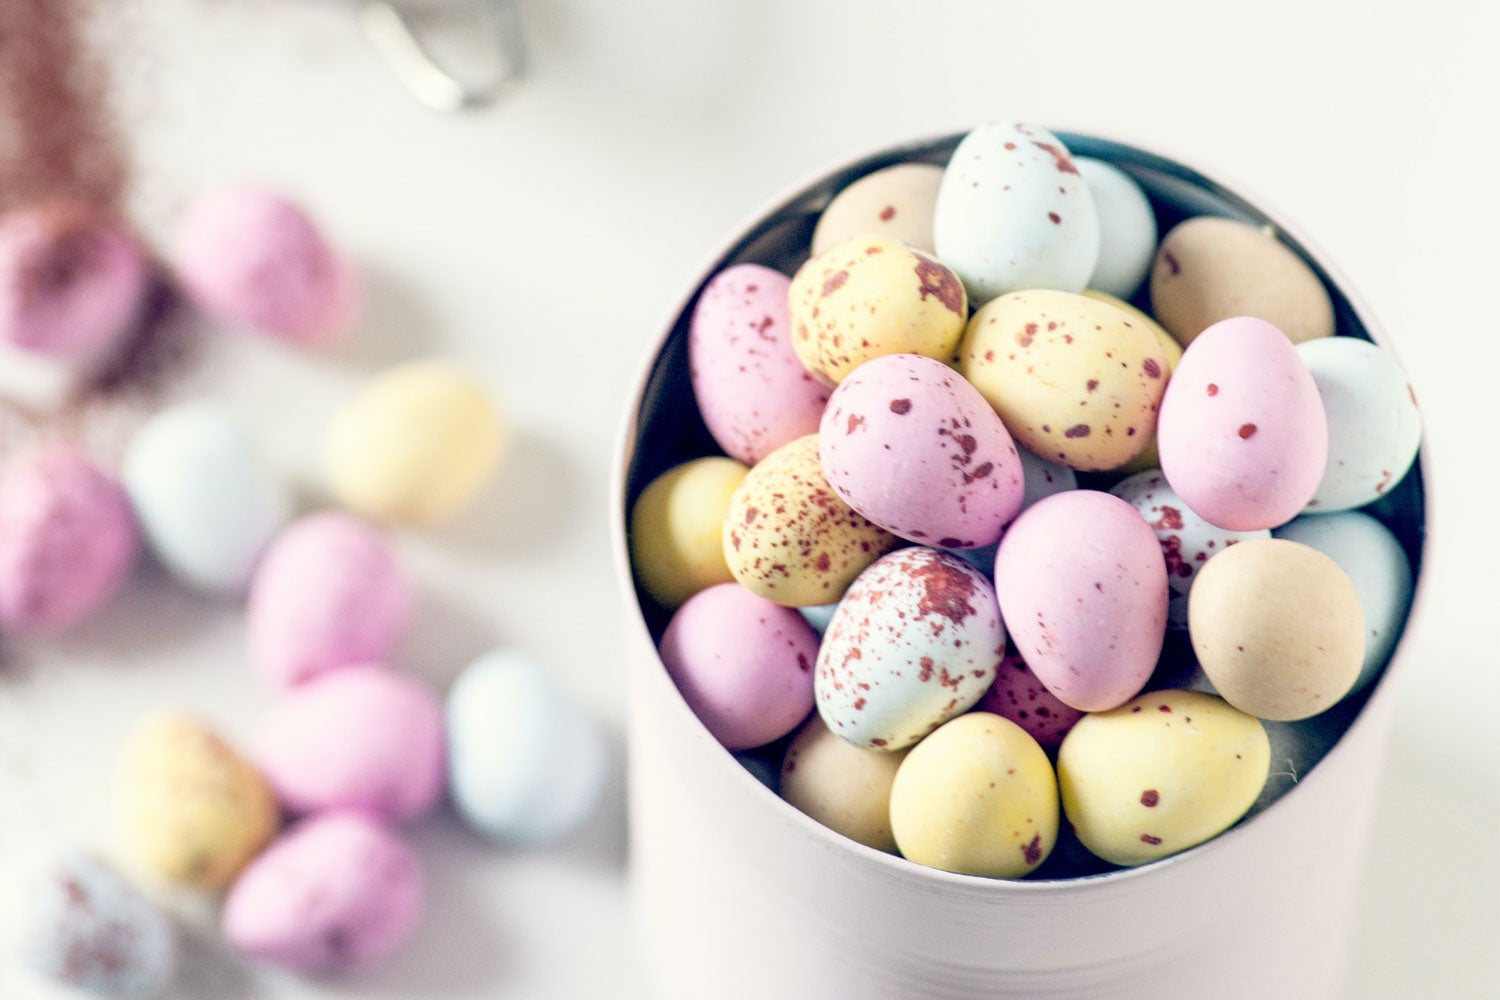 Celebrate Easter in style - egg-cellent activities for the Easter weekend!